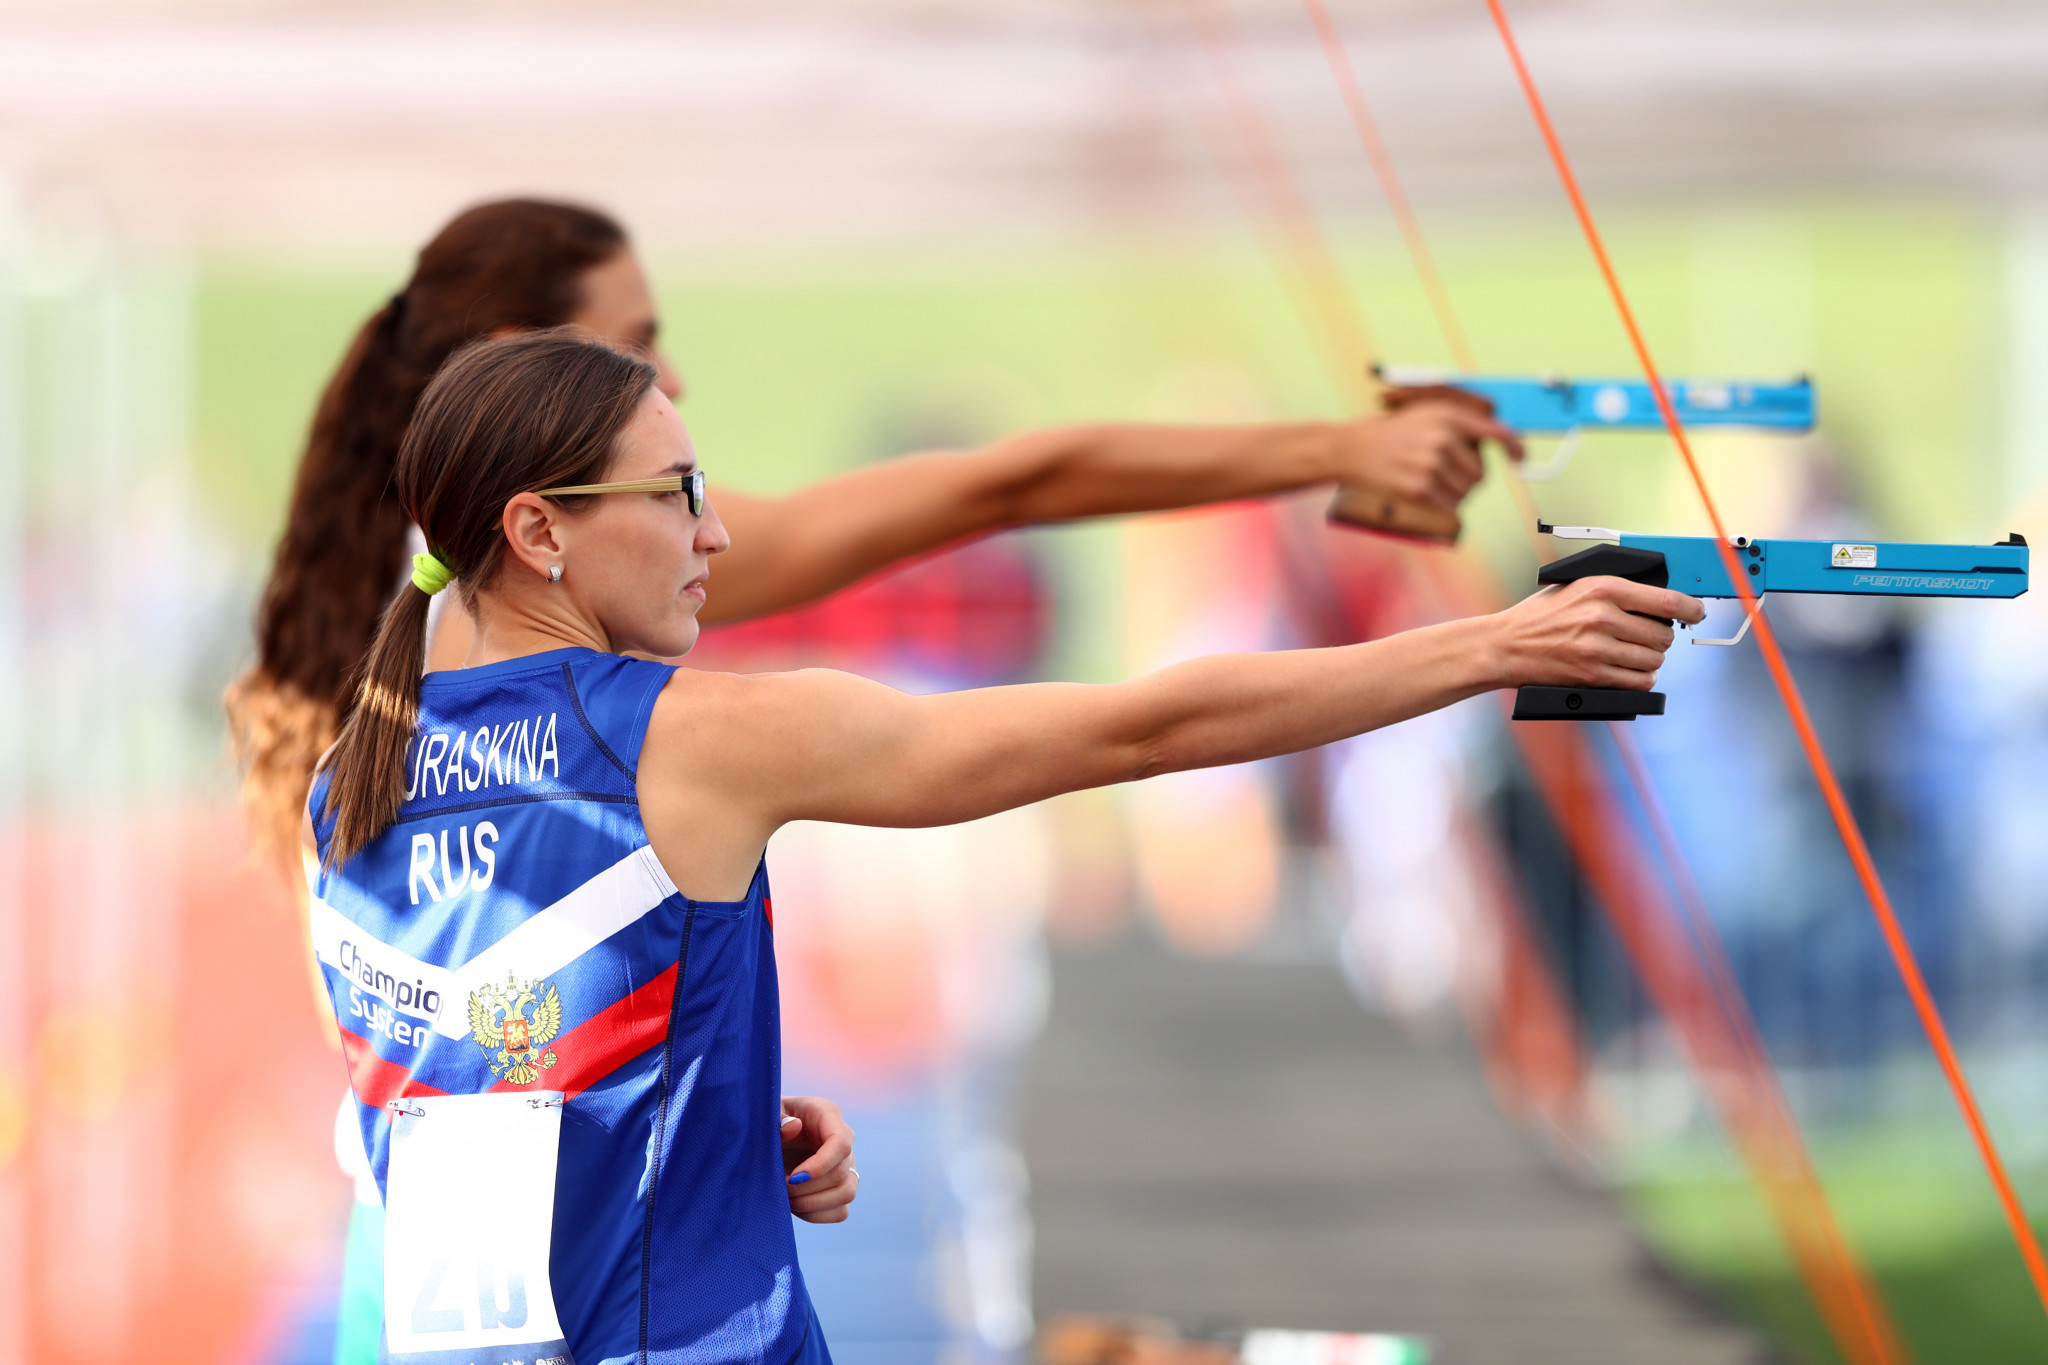 First modern pentathlon virtual laser shooting qualifiers end ahead of finals